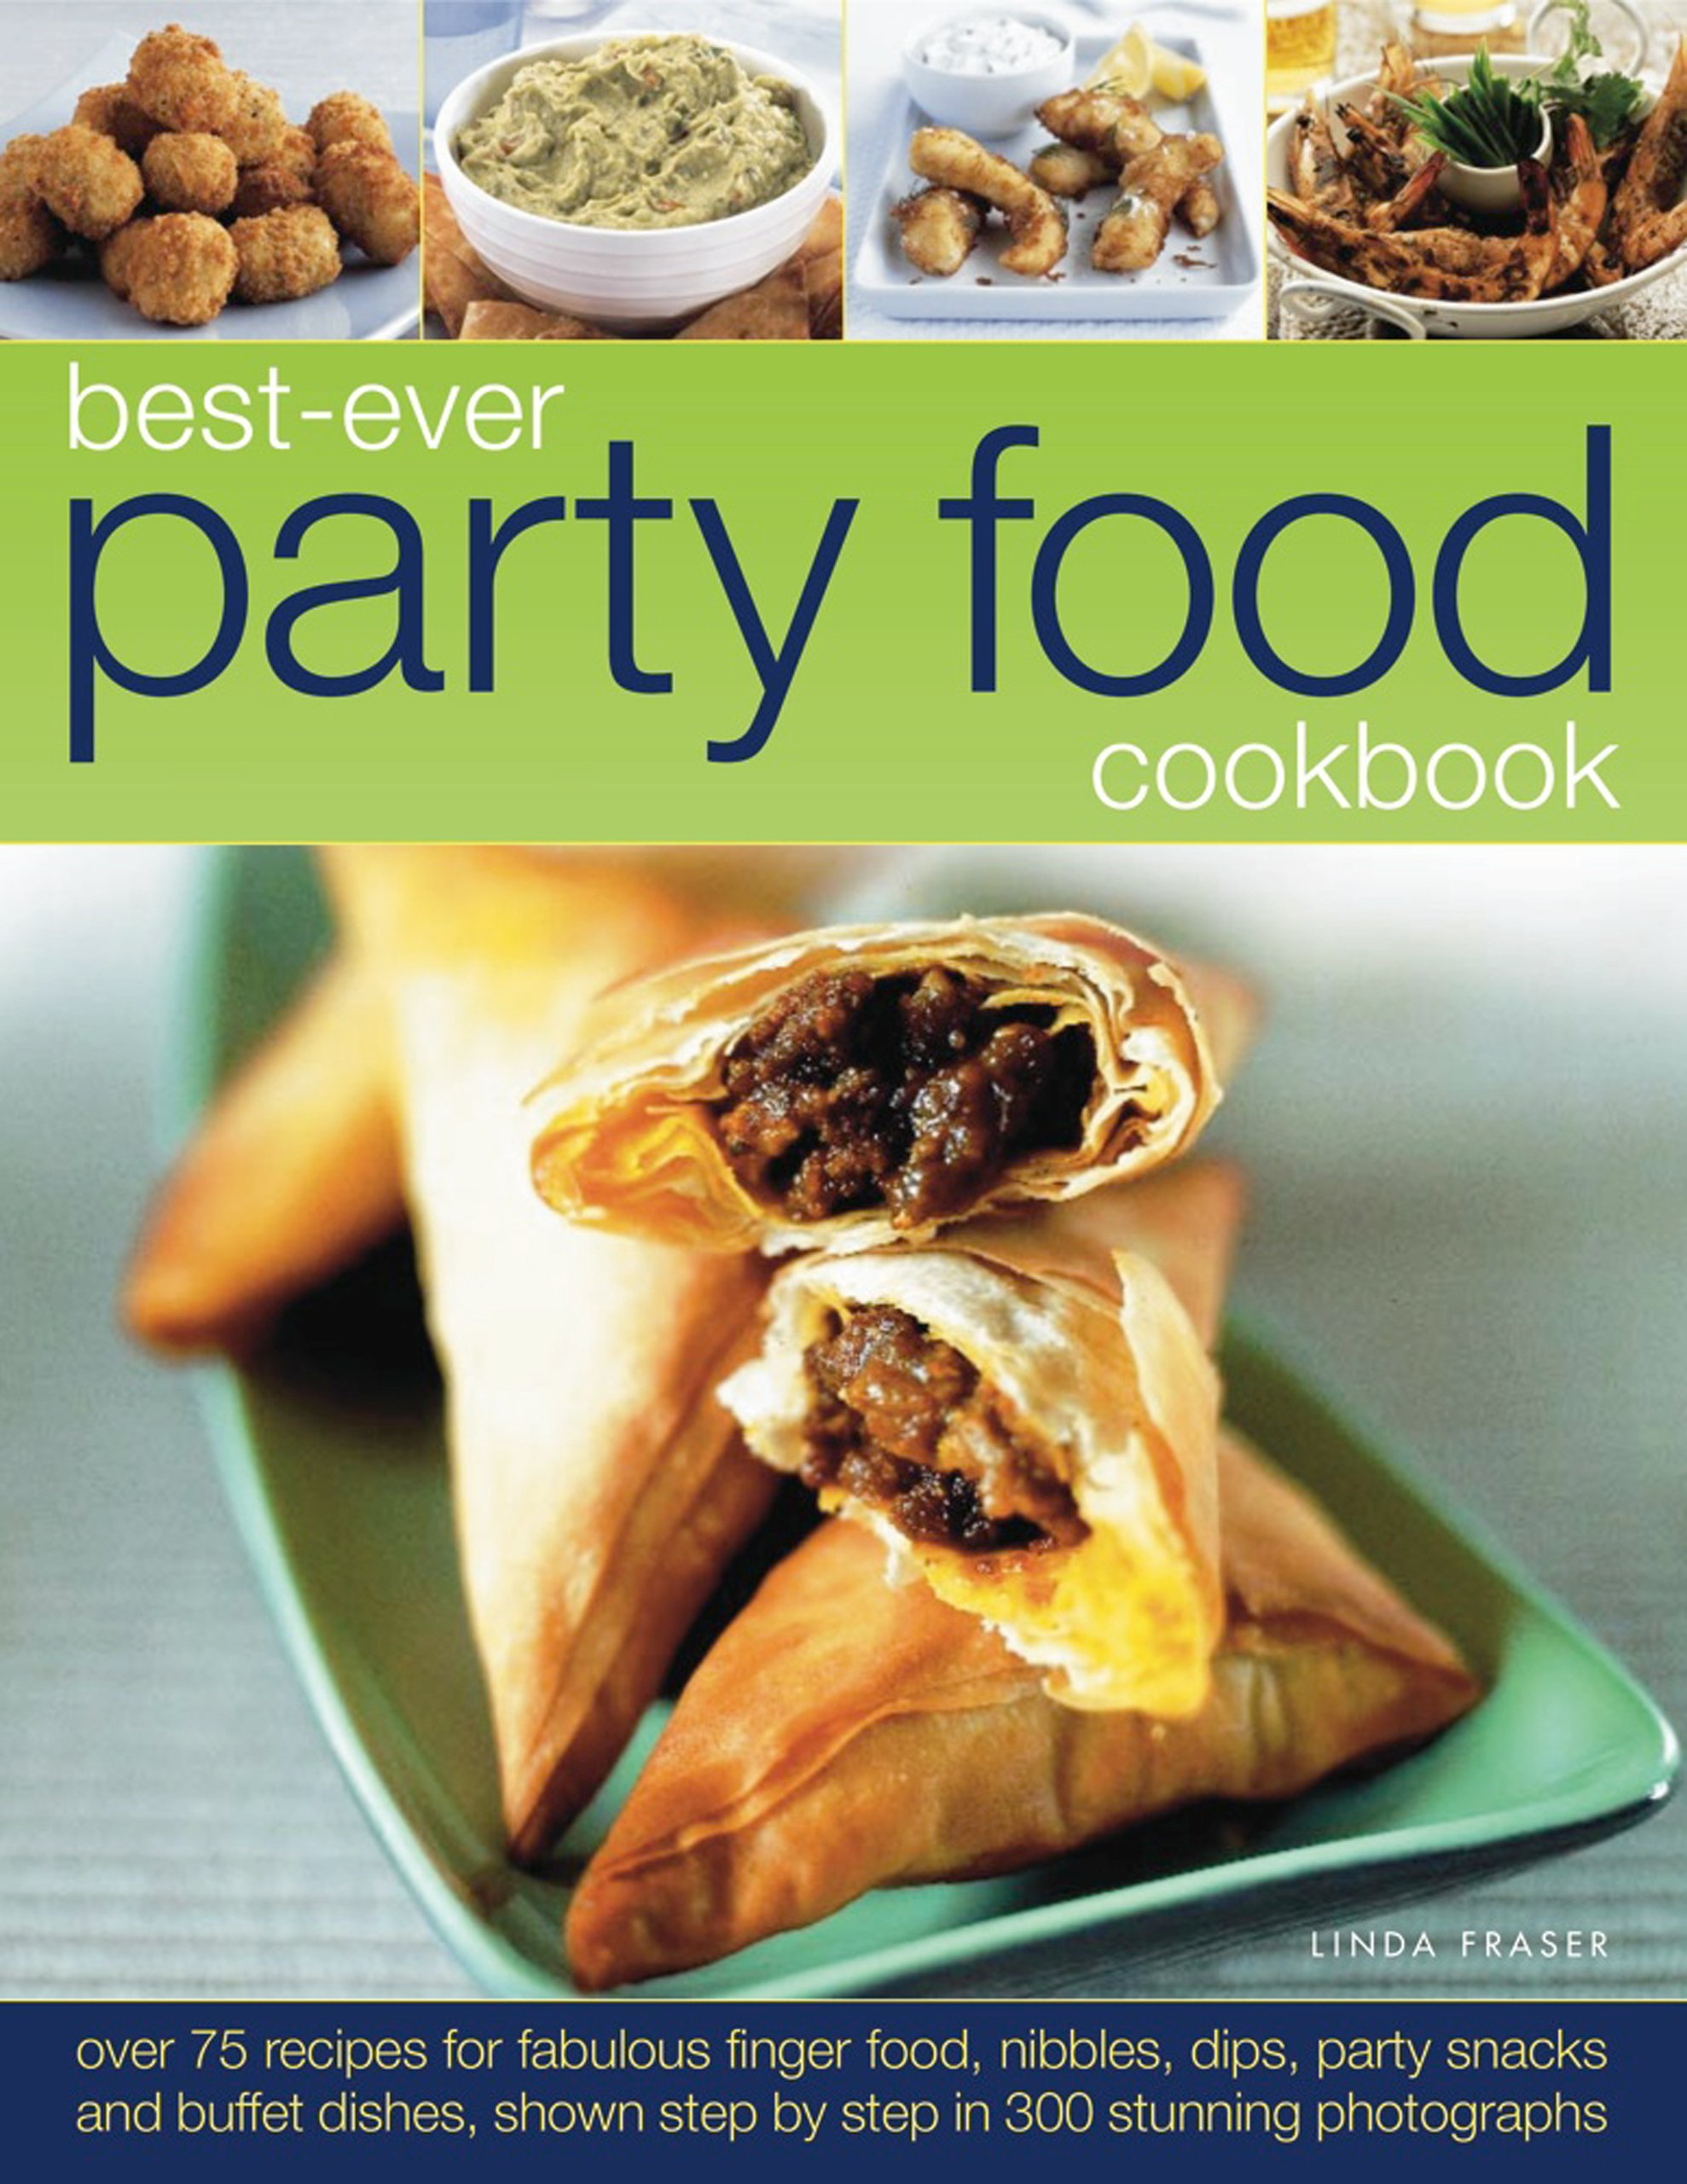 Best ever party food cookbook amazon linda fraser best ever party food cookbook amazon linda fraser 9781844769476 books forumfinder Images